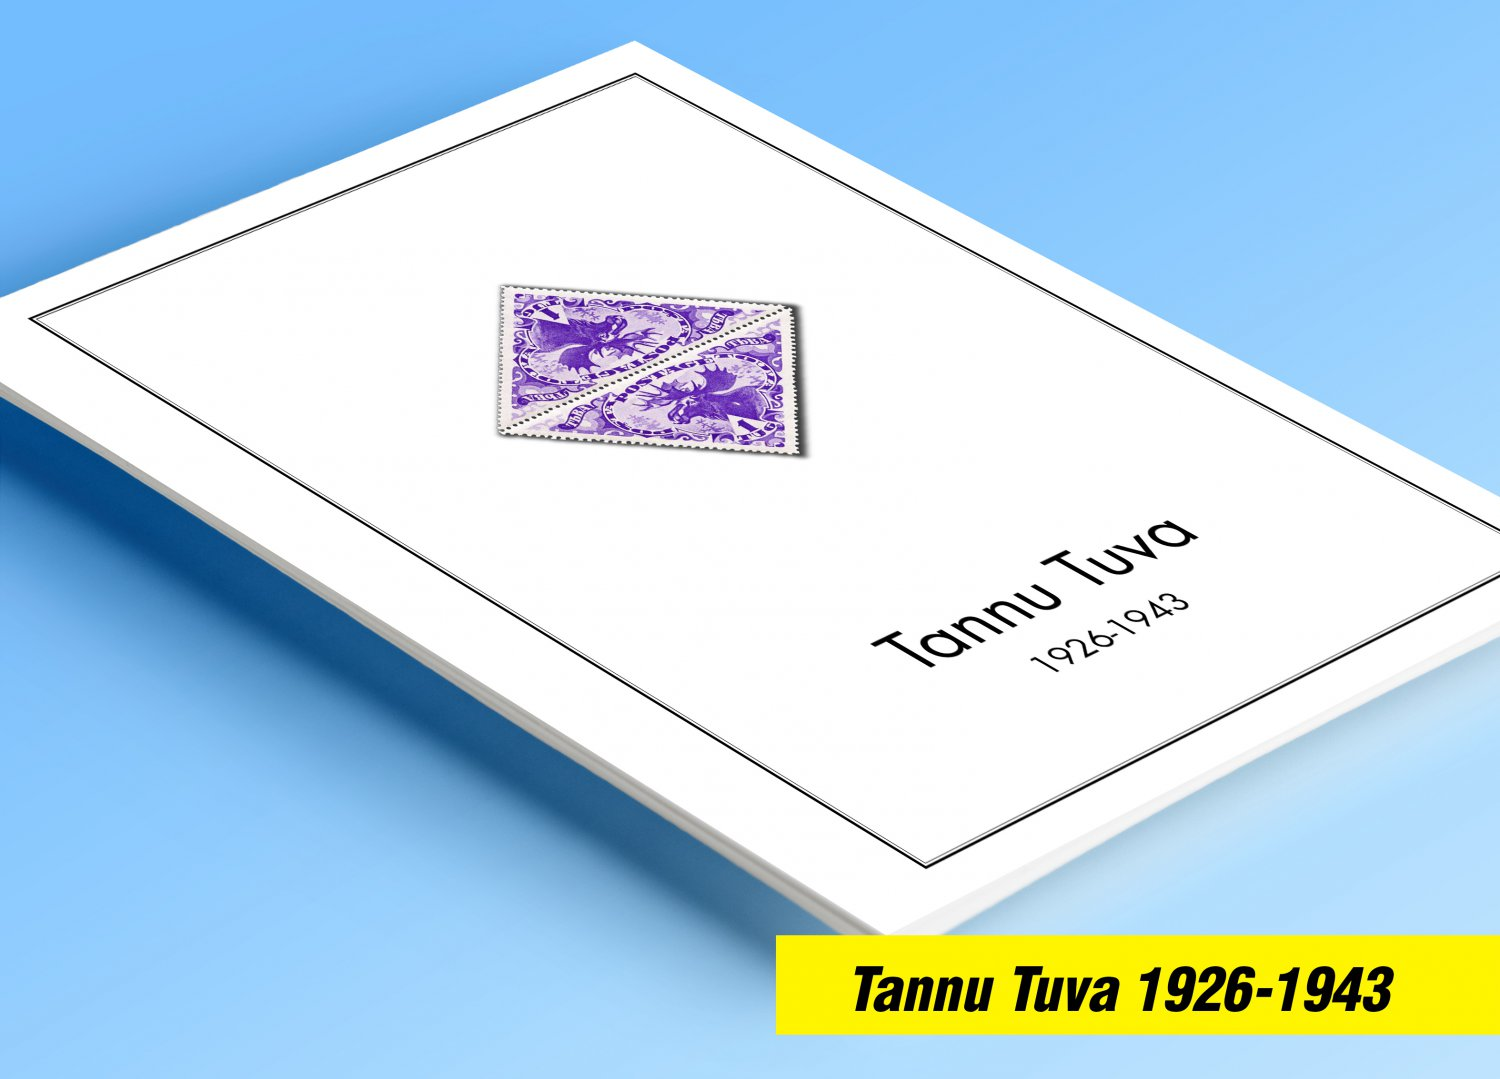 COLOR PRINTED TANNU TUVA 1926-1943 ALBUM PAGES (18 illustrated pages)